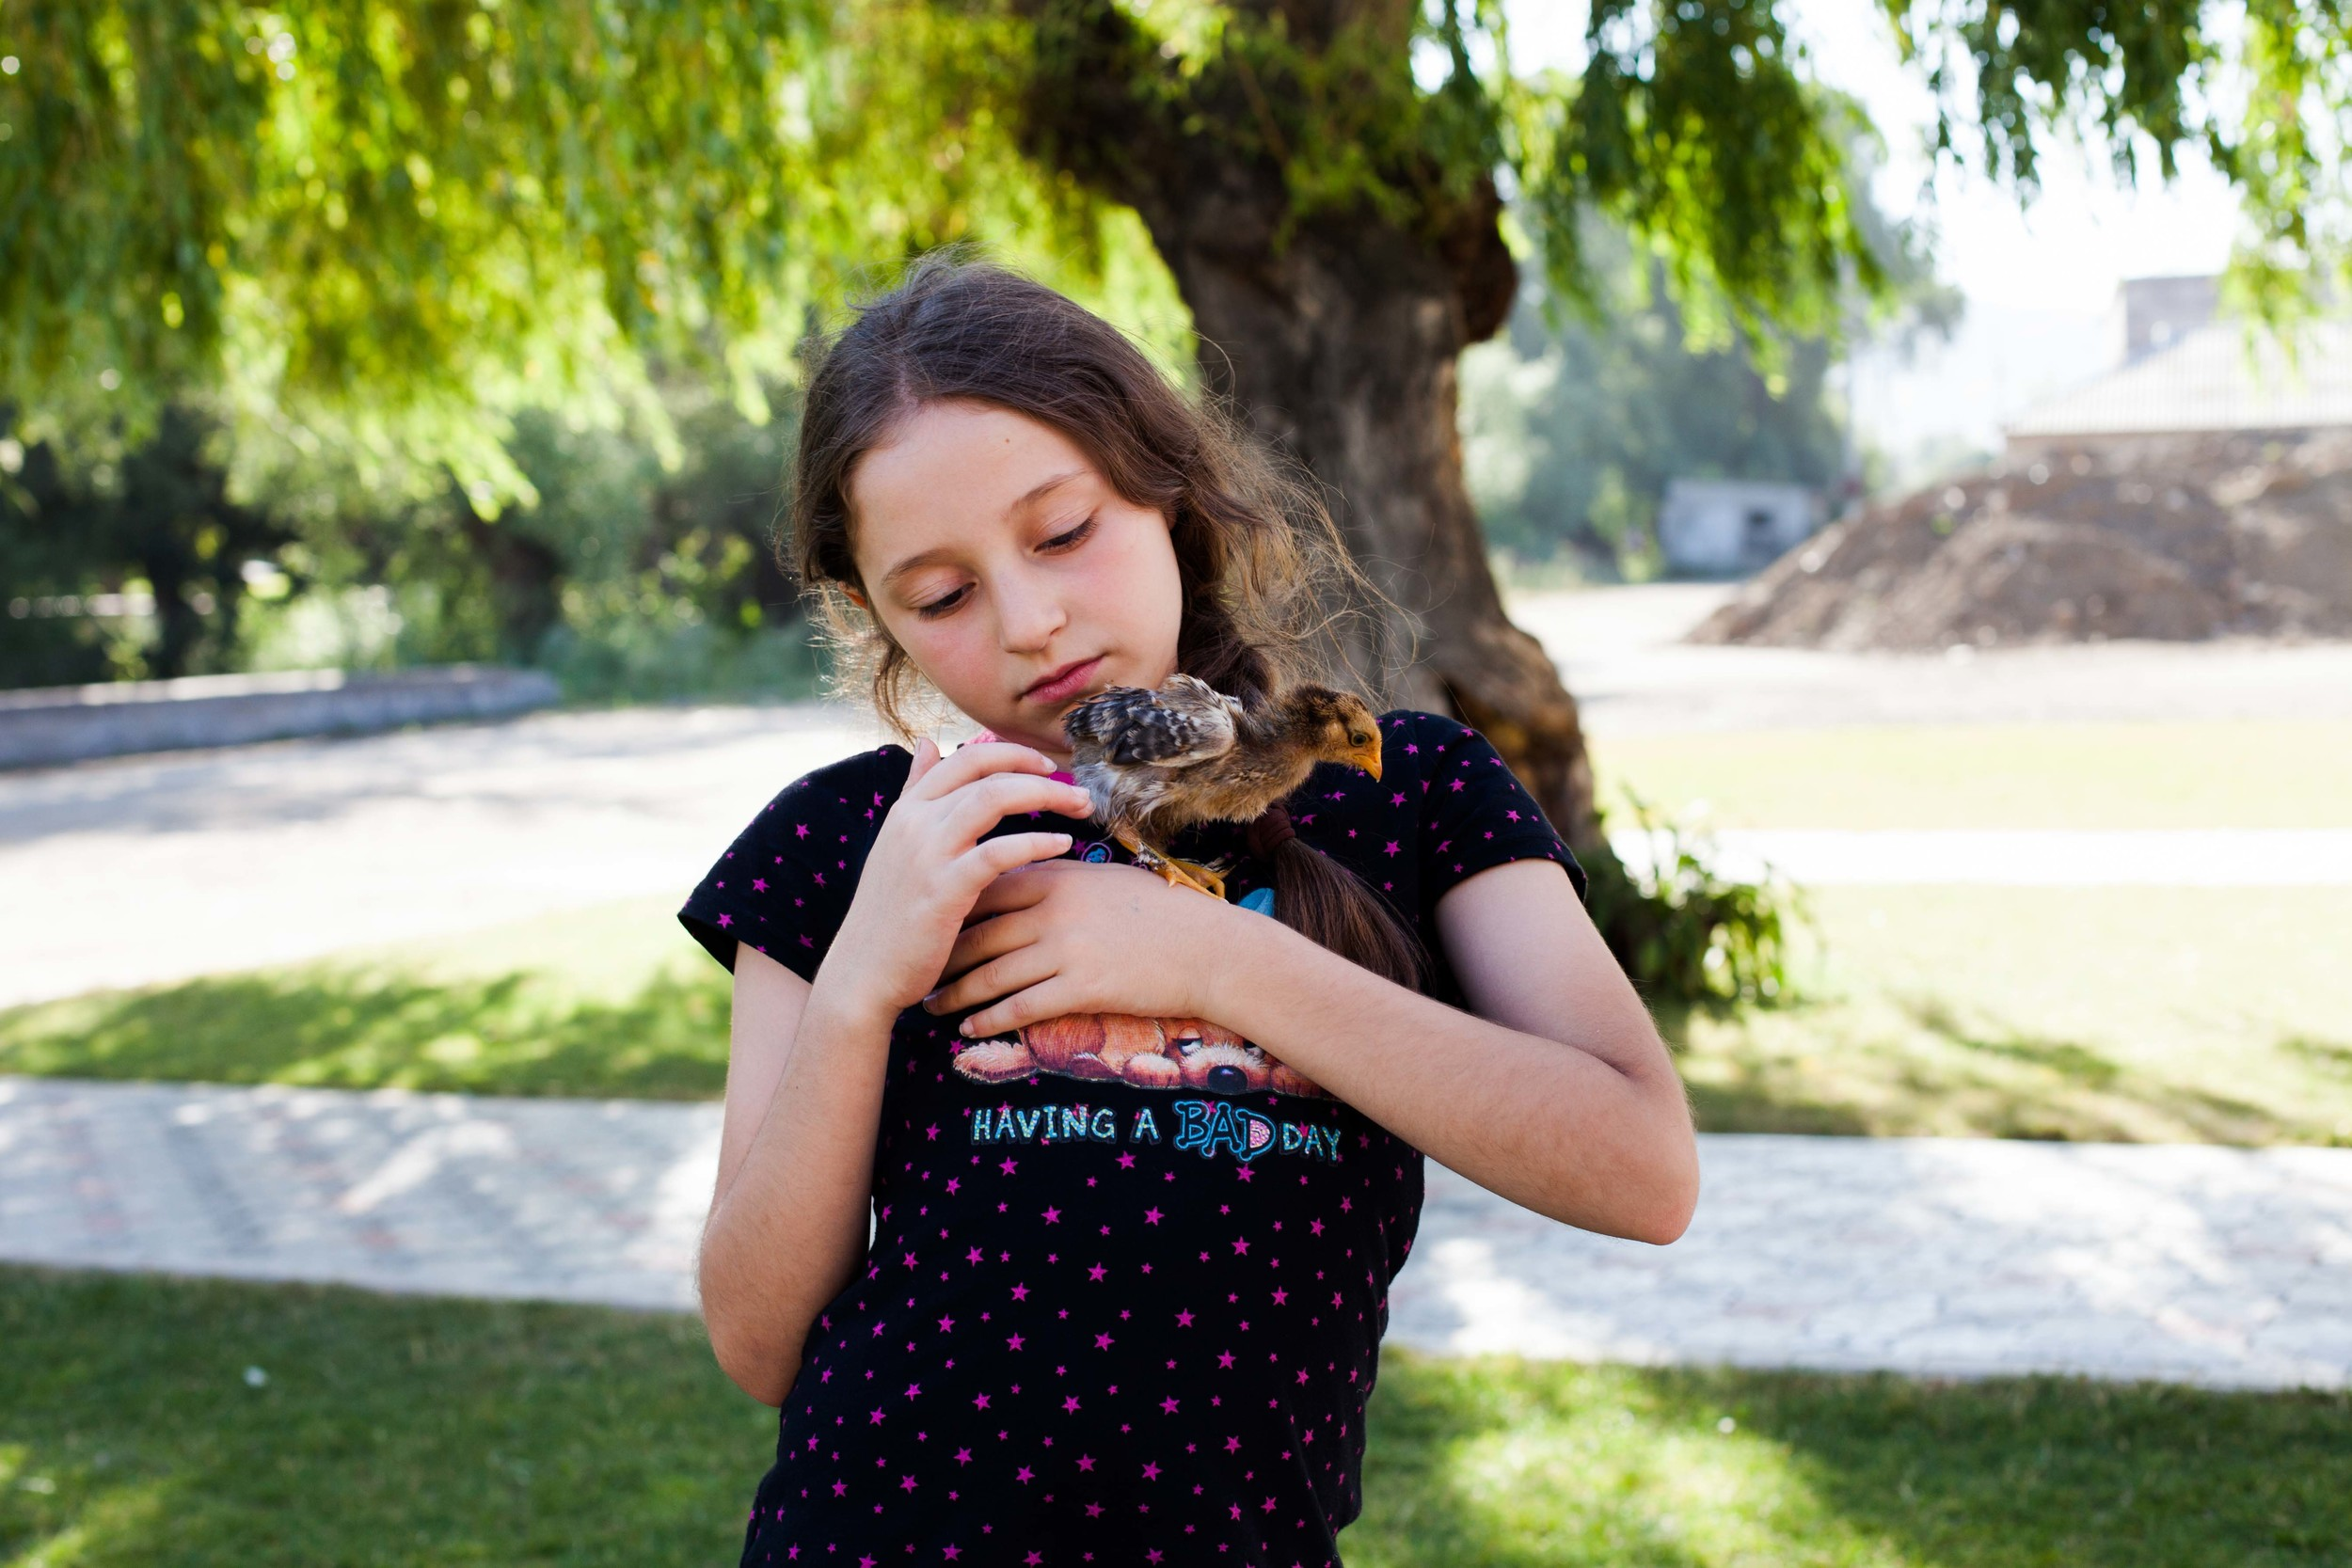 A young girl from California spends her summers in Spitak with her grandmother. Here she gets to learn the language that her parents speak, engage with the students at the YMCA, and help raise baby chickens and peacocks.